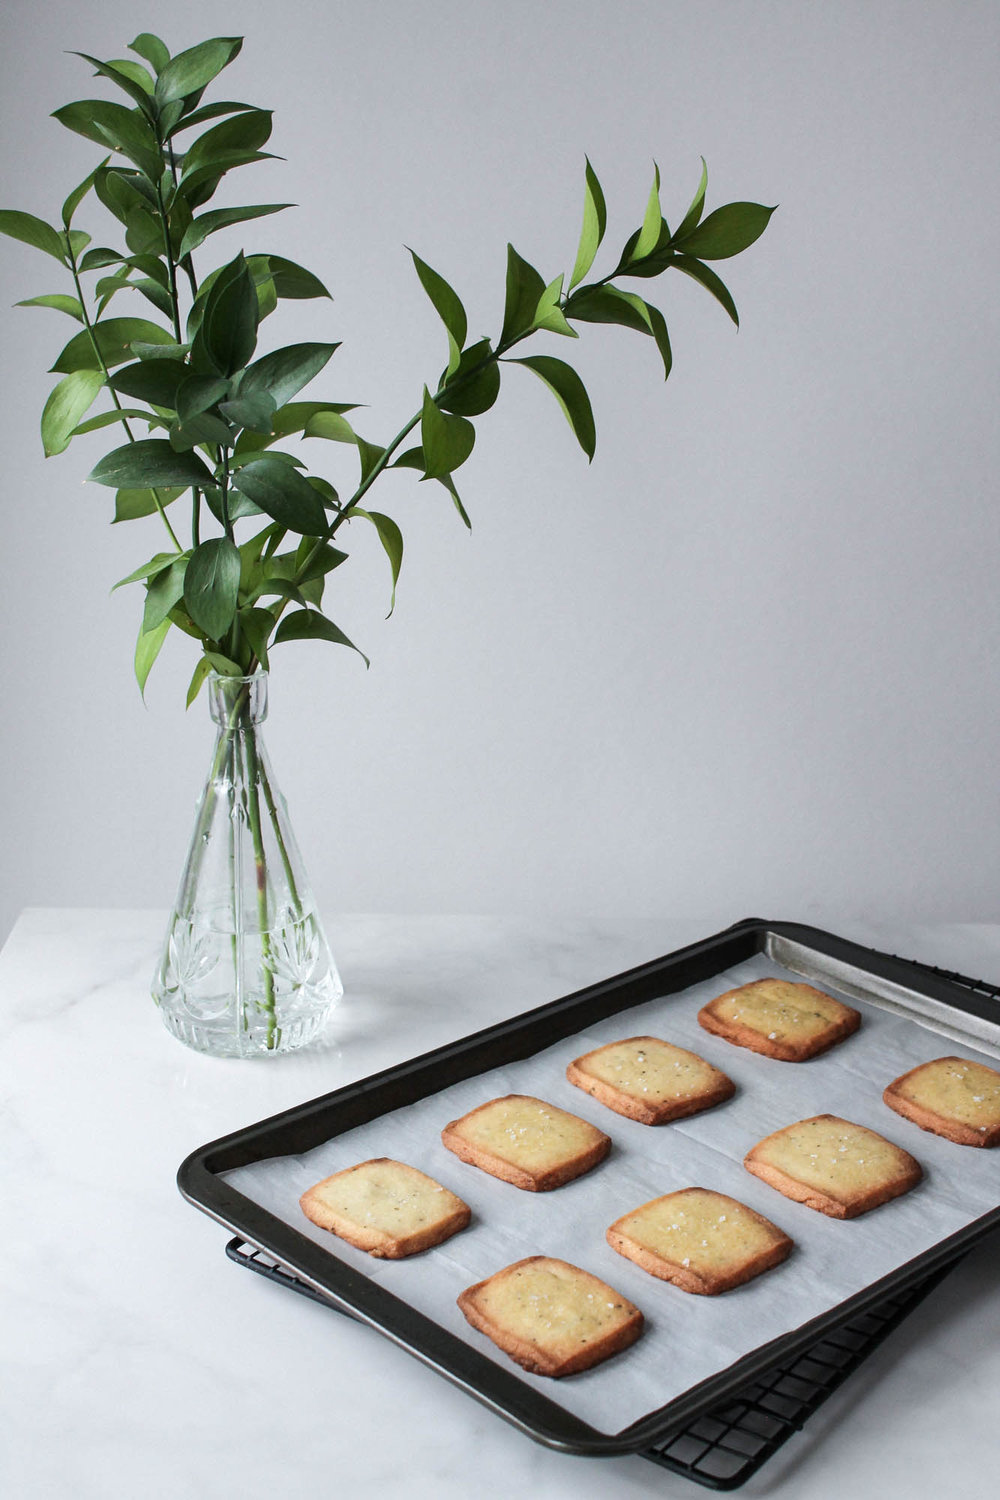 Rosemary Olive Oil Shortbread Cookies || Savoury winter biscuit recipe made with only 6 ingredients. Simple and delicious! Holiday or Christmas baking at it's finest. || www.creamandhoney.ca